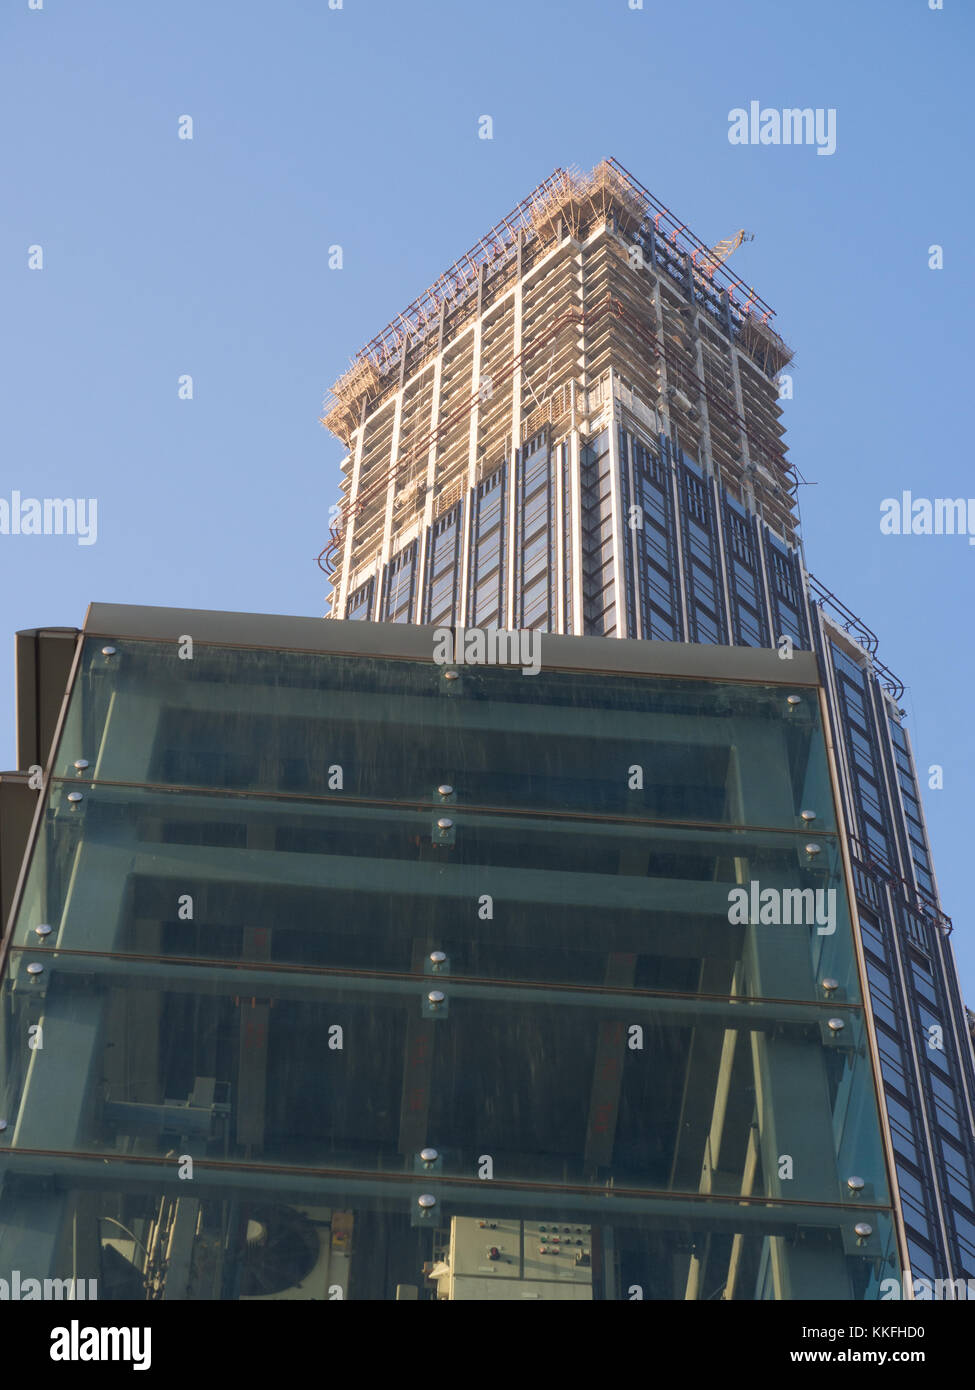 Glass Lift And Tall Building - Stock Image